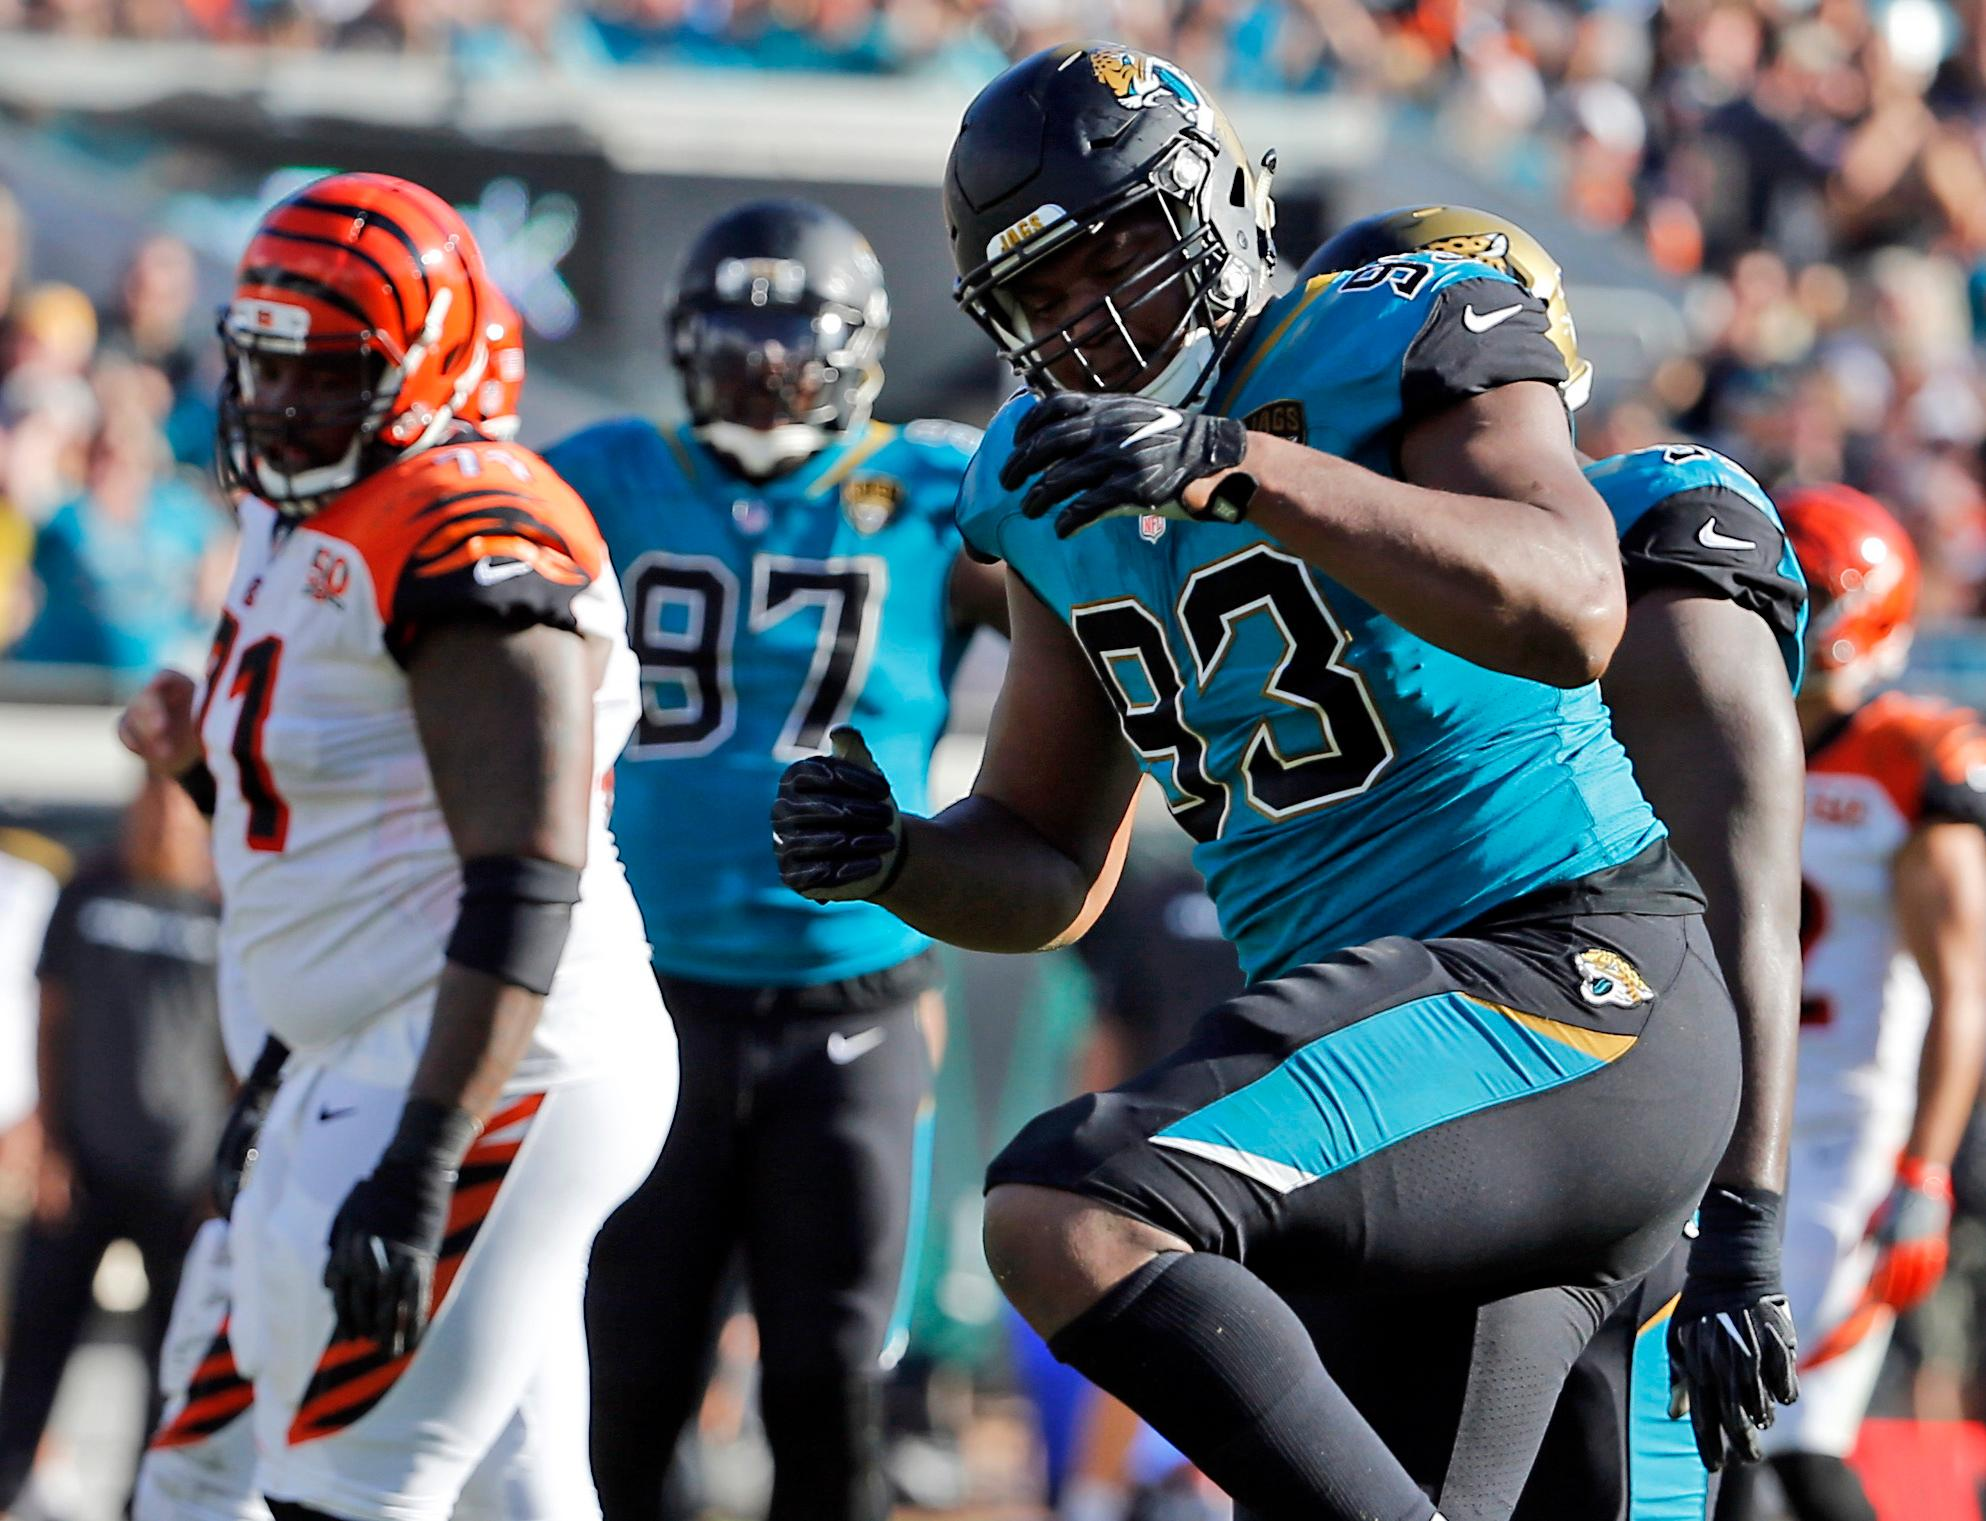 FILE - In this Sunday, Nov. 5, 2017, file photo, Jacksonville Jaguars defensive lineman Calais Campbell (93) celebrates a big play against the Cincinnati Bengals during the second half of an NFL football game  in Jacksonville, Fla. Two statistics often sway the voting for the defensive player of the year award: sacks and interceptions. Certainly the quarterback traps Jacksonville has gotten, led by Calais Campbell, have impressed the voters. (AP Photo/Stephen B. Morton, File)